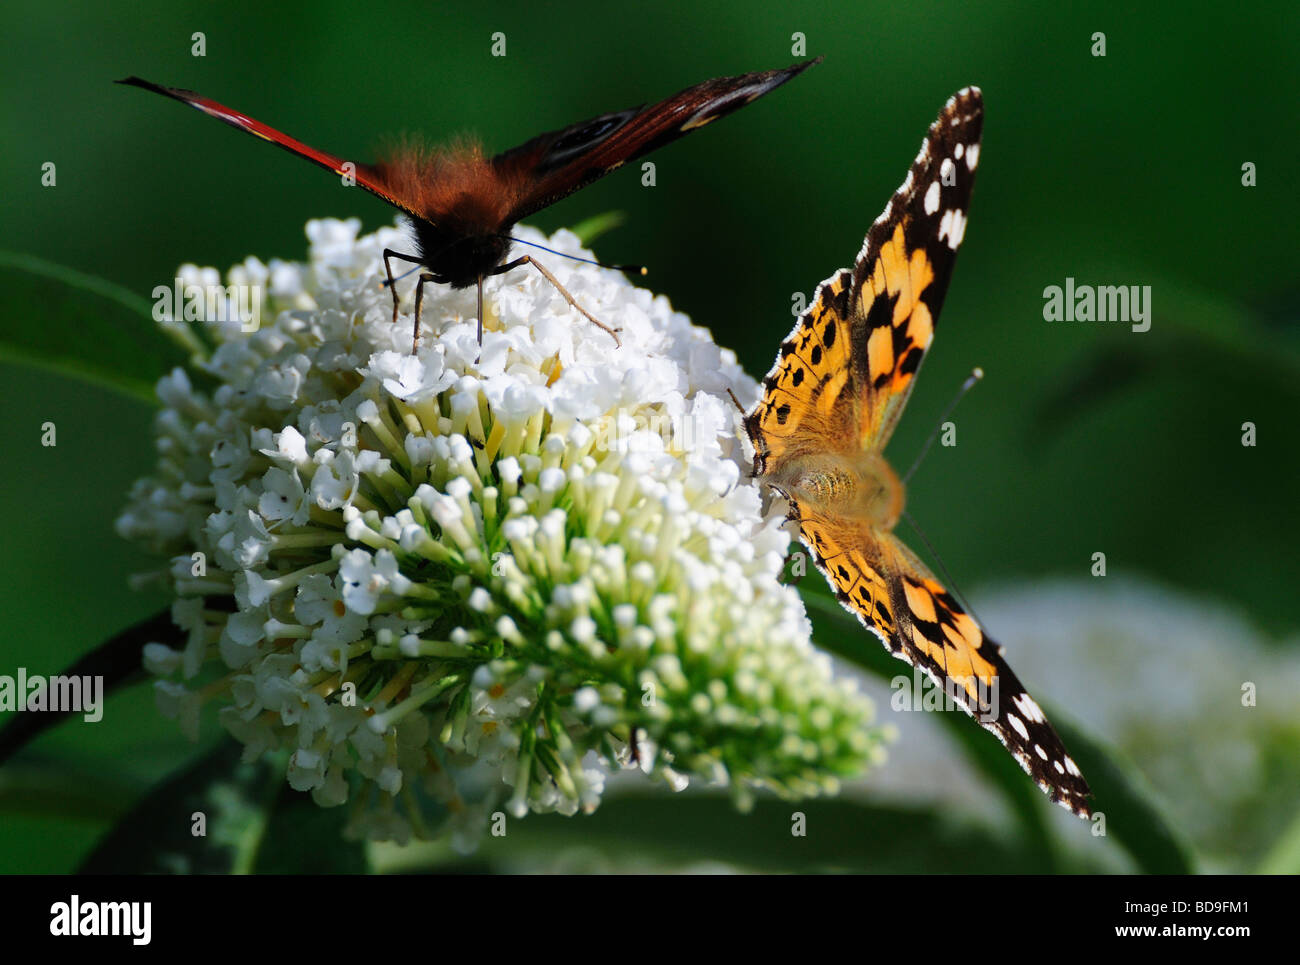 Butterflies ,'painted lady' on a Buddleia in the Garden - Stock Image